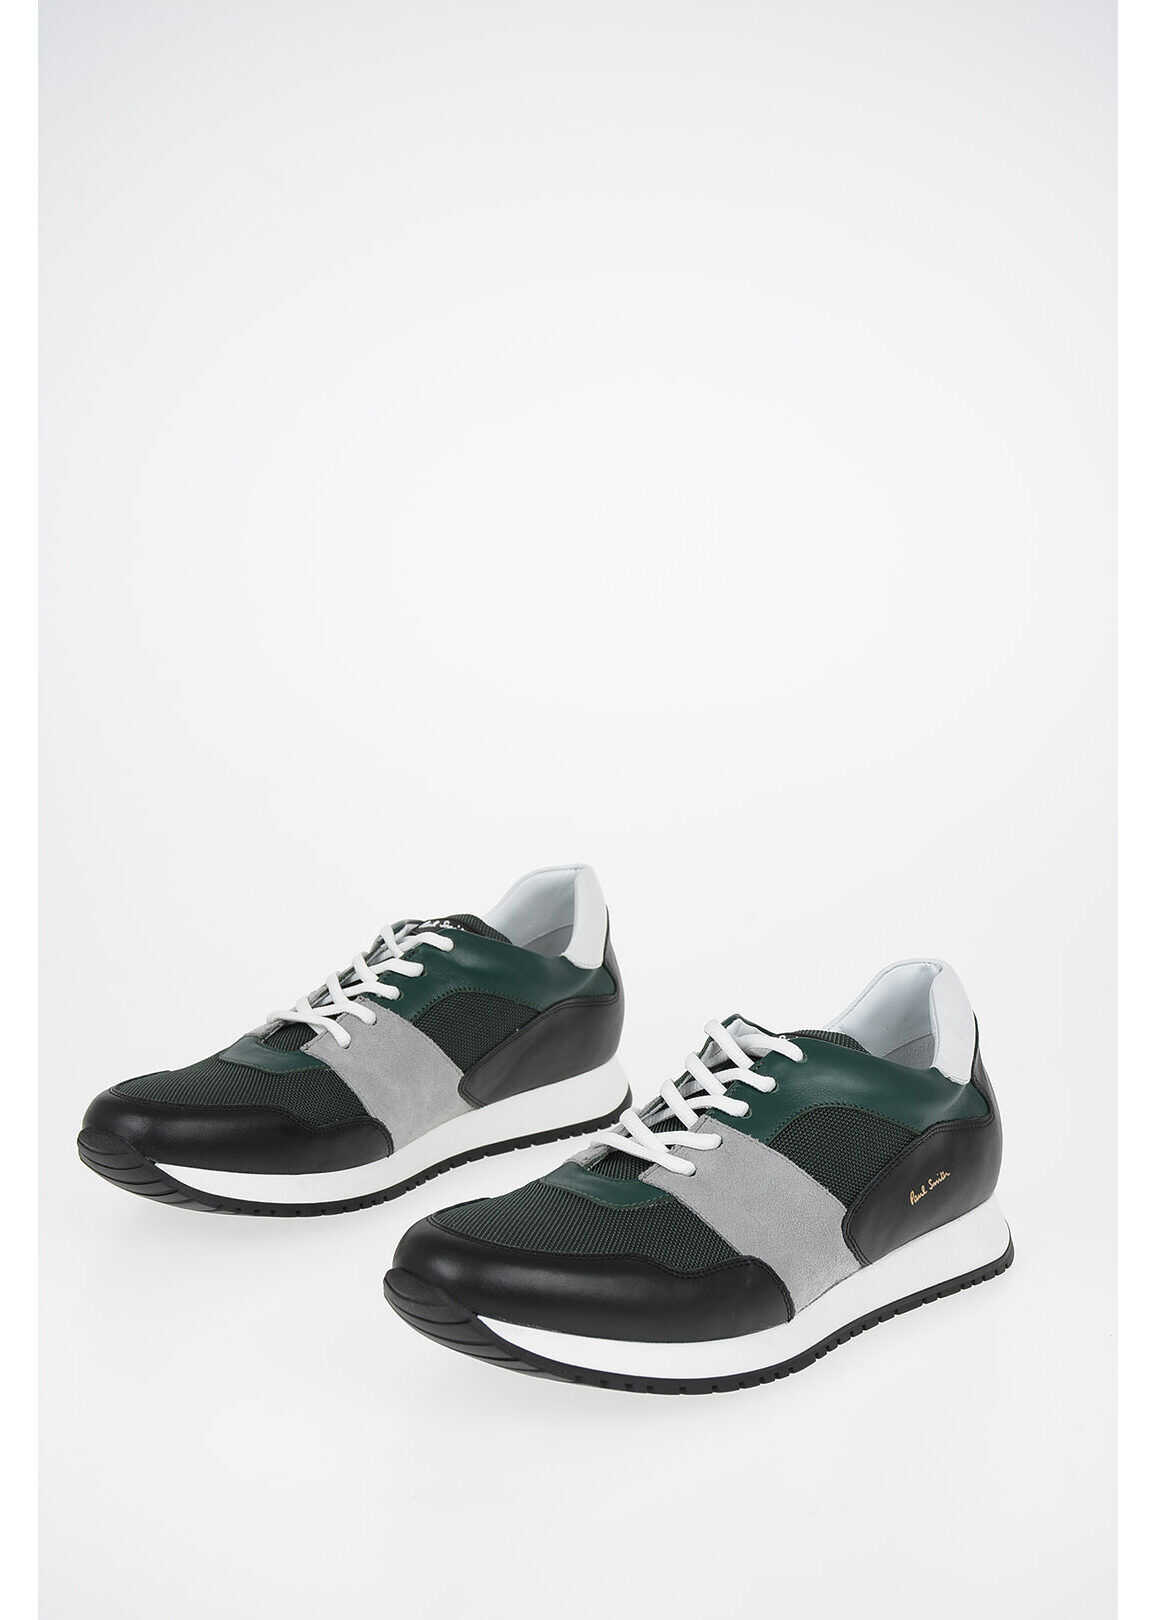 Paul Smith Fabric and Leather Sneakes GREEN